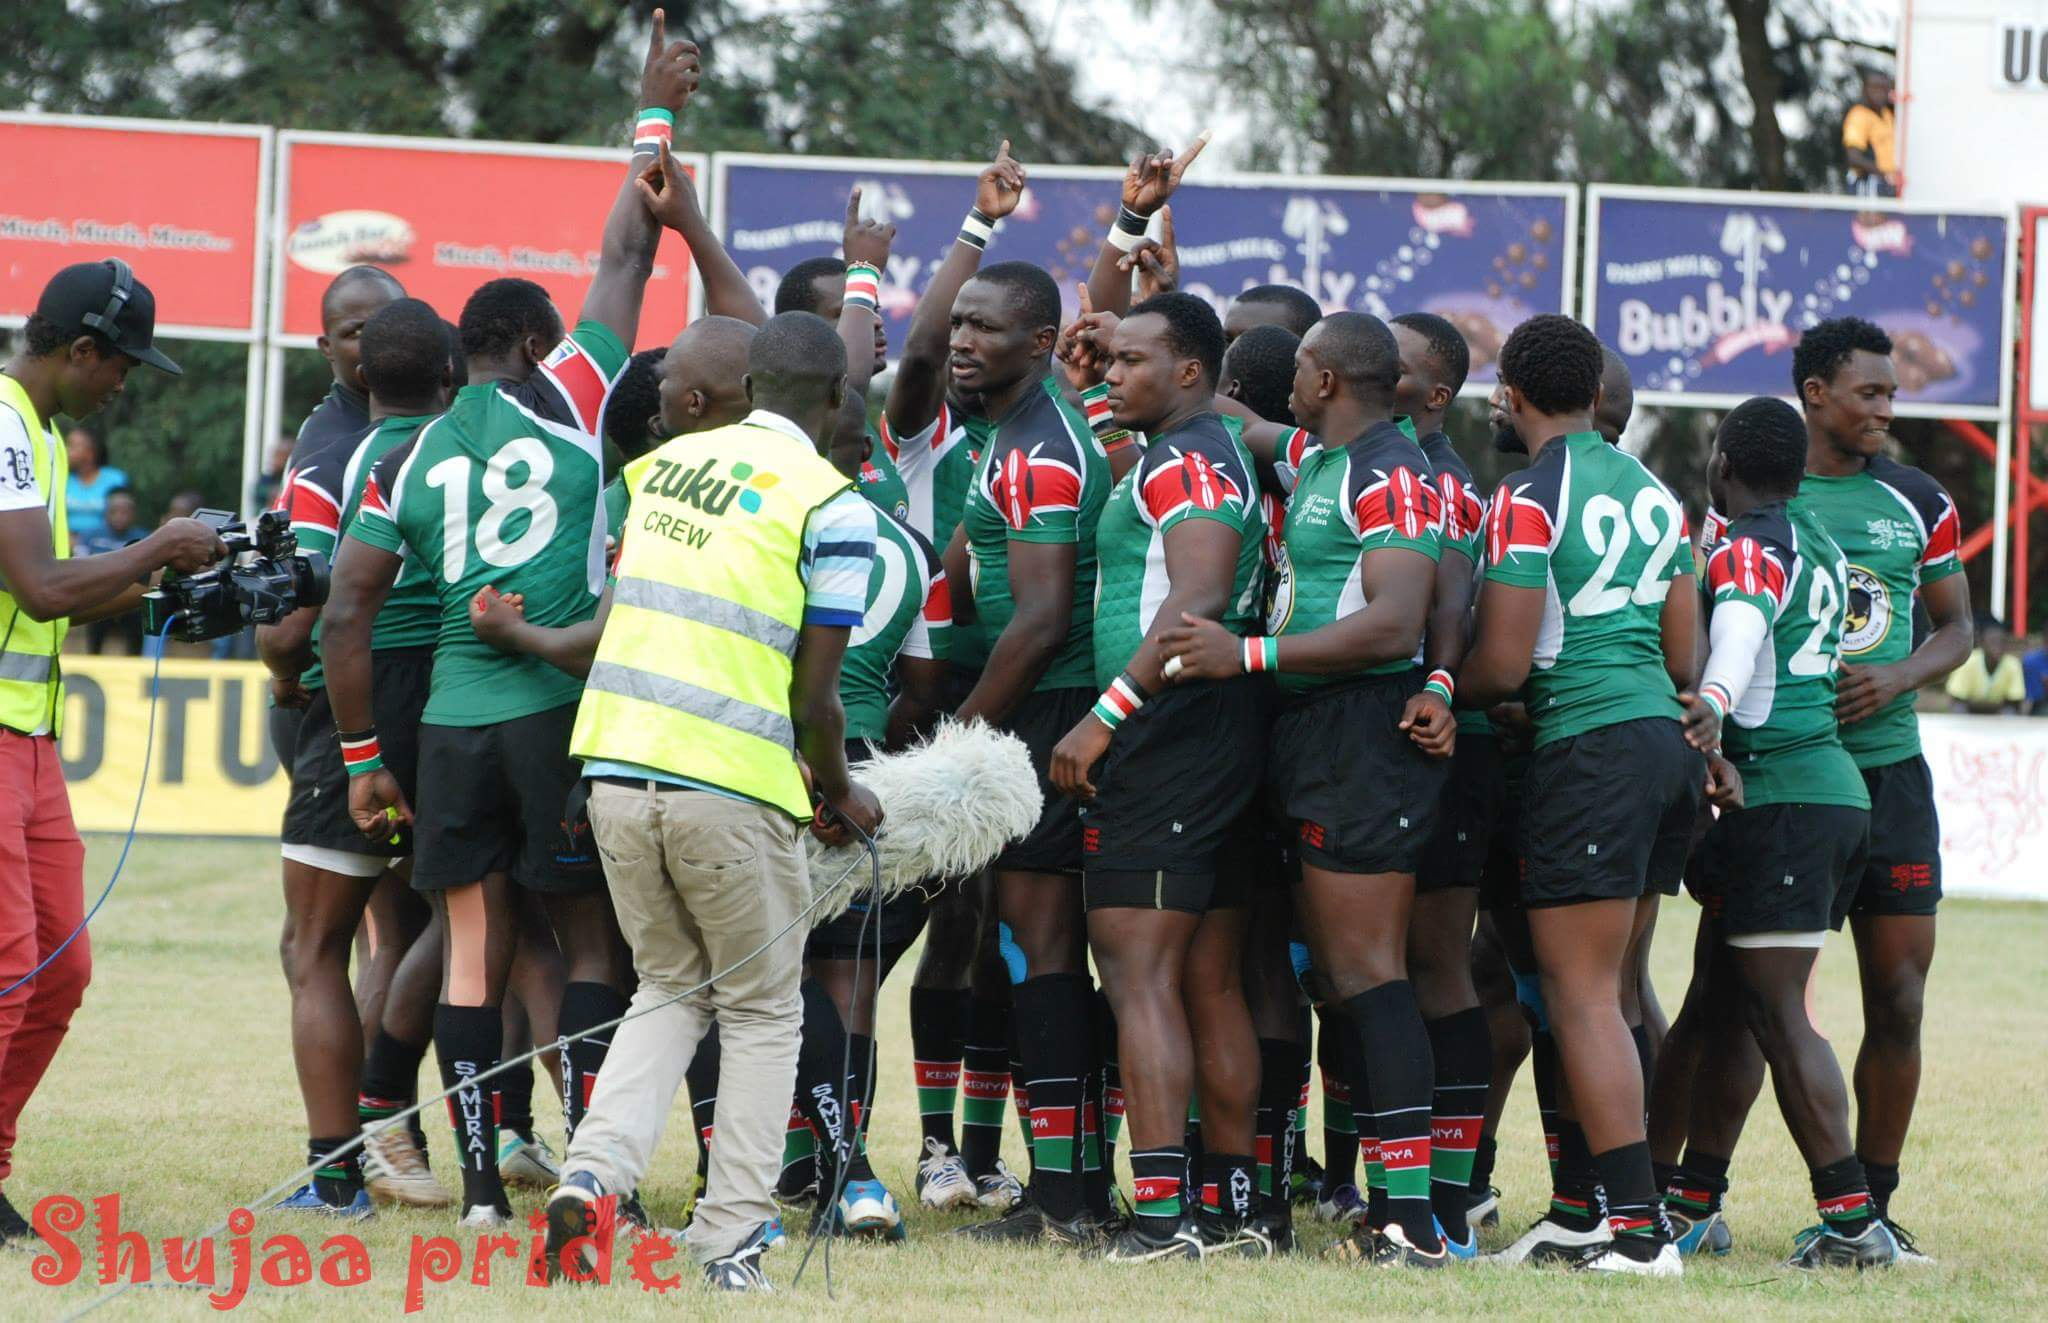 KRU CEO touches on Kenya fifteens sponsorship